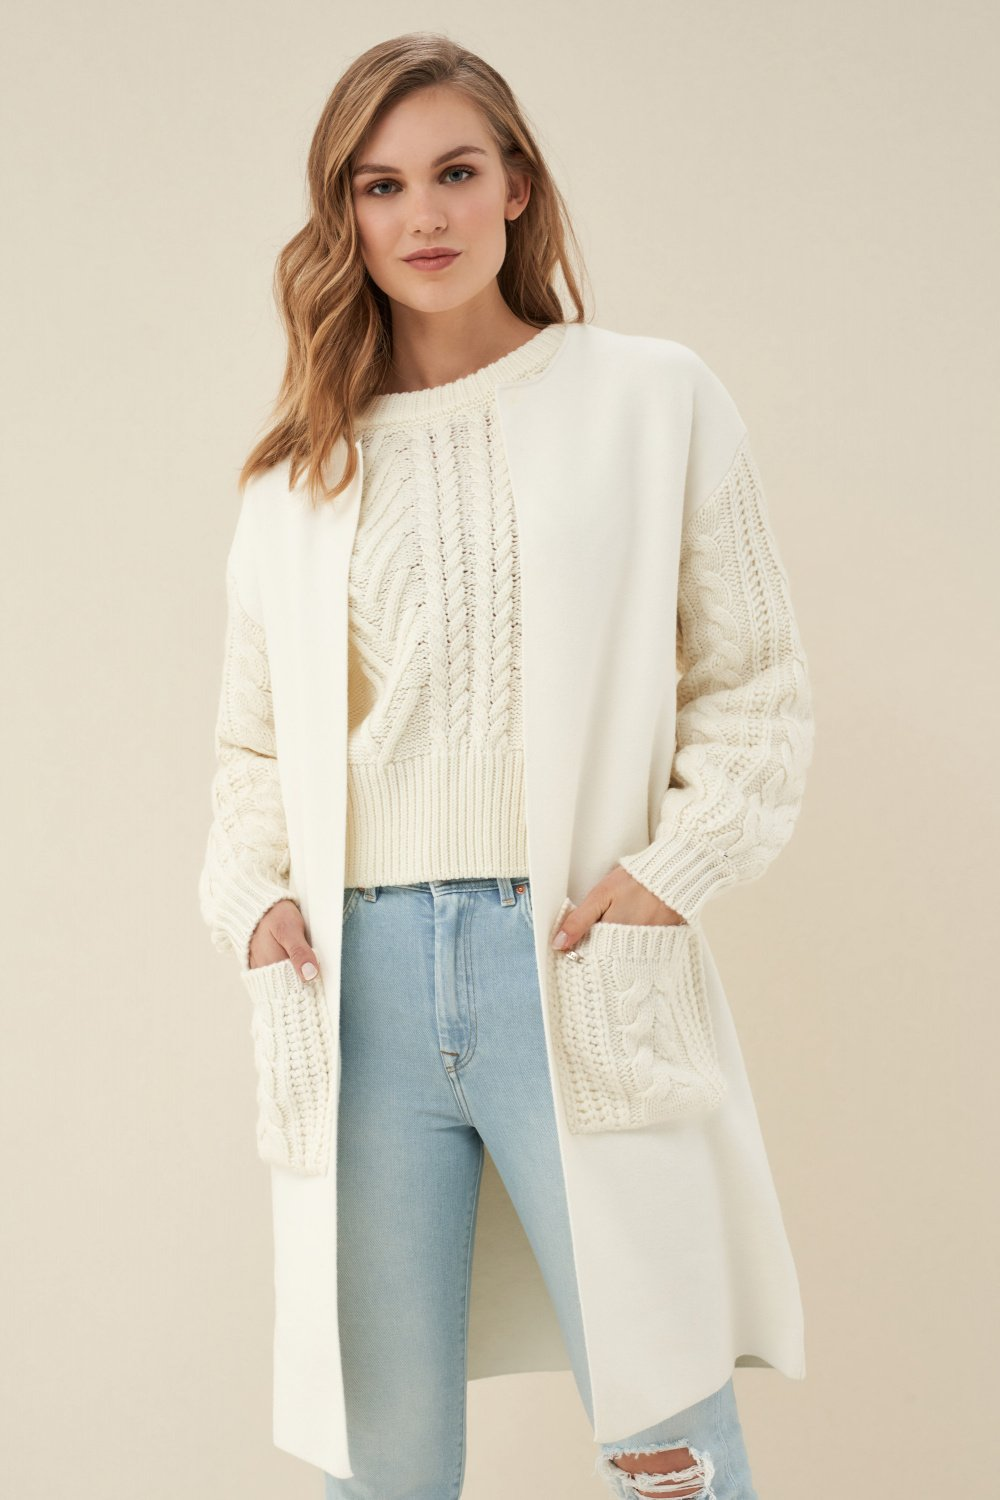 Knitted cardigan with pockets - Salsa